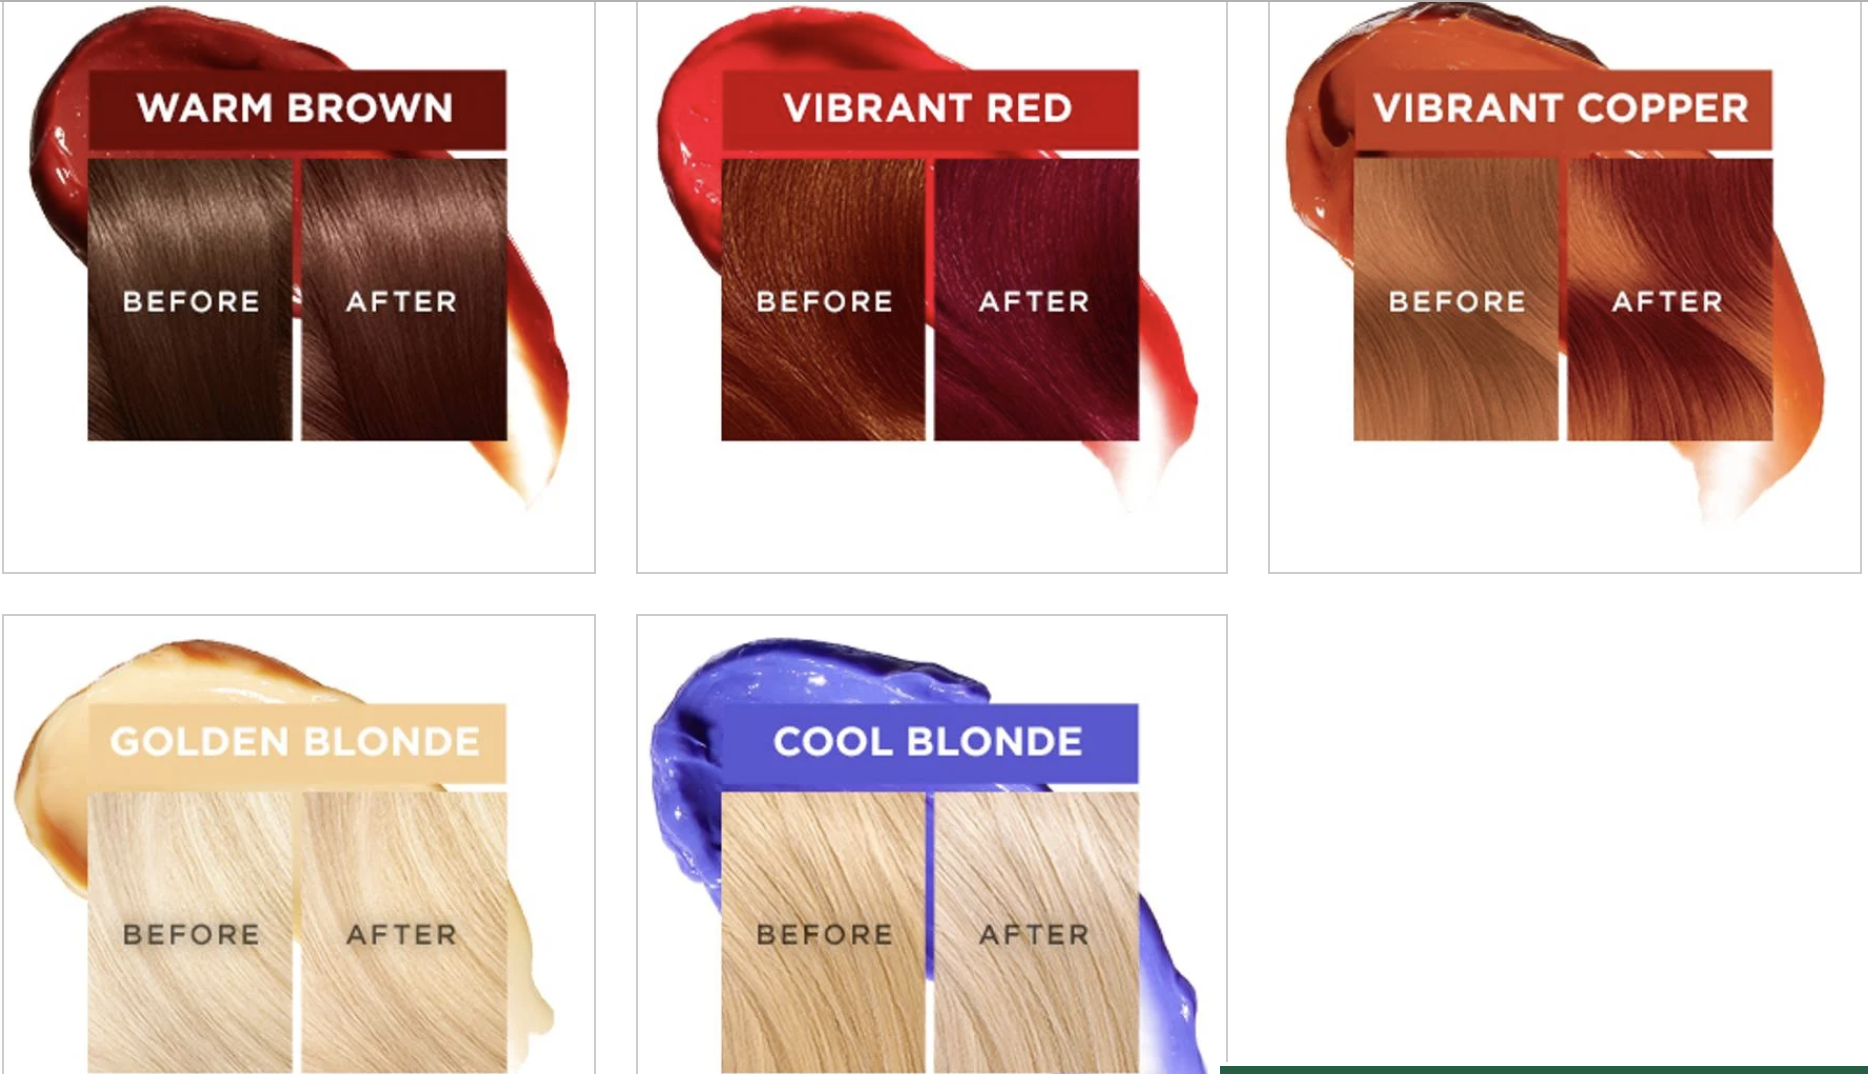 The chart of the shades, and the before/after of each one, turning each color more vibrant